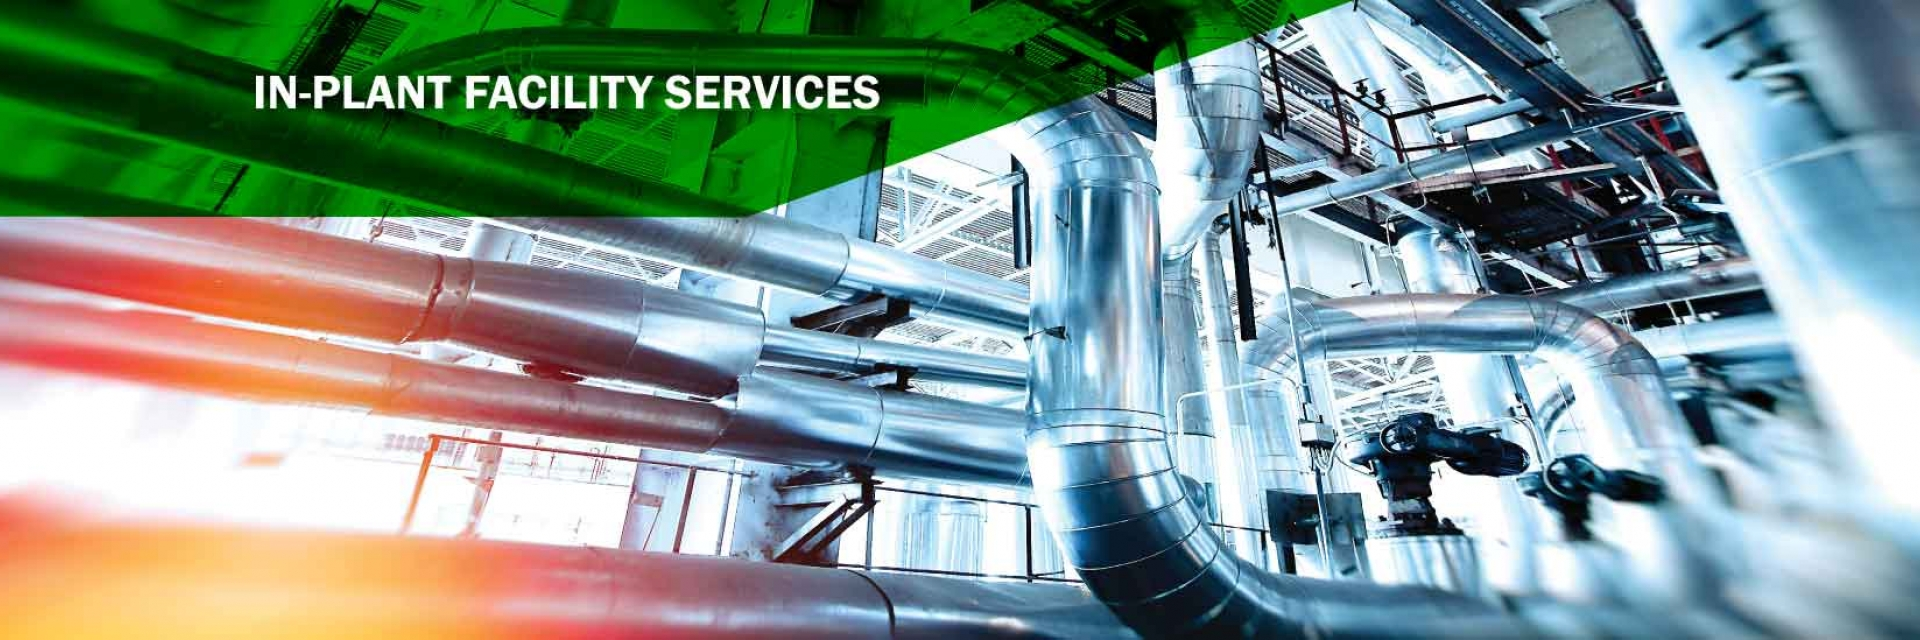 in-plant-facility-services-banner